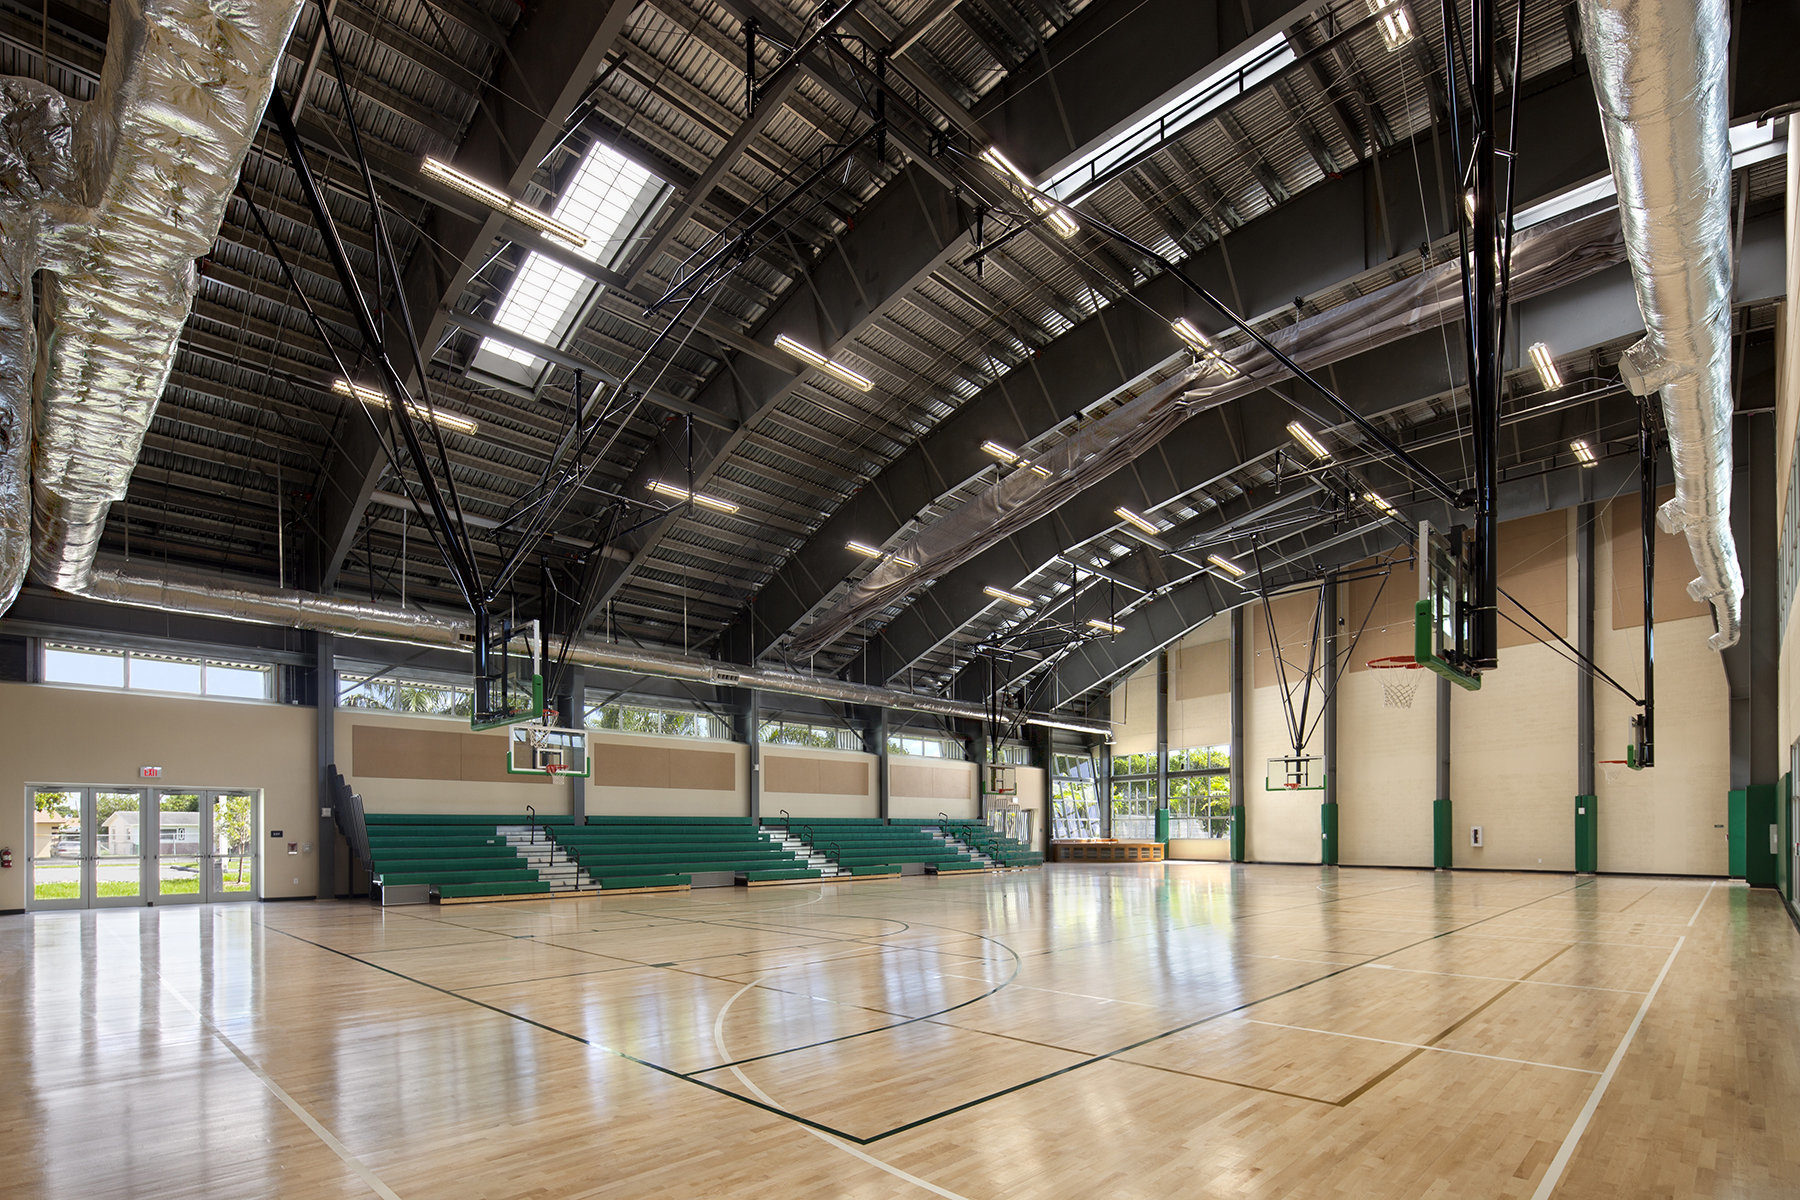 Basketball Court at Joe Celestin Center at Claude Pepper Park, North Miami